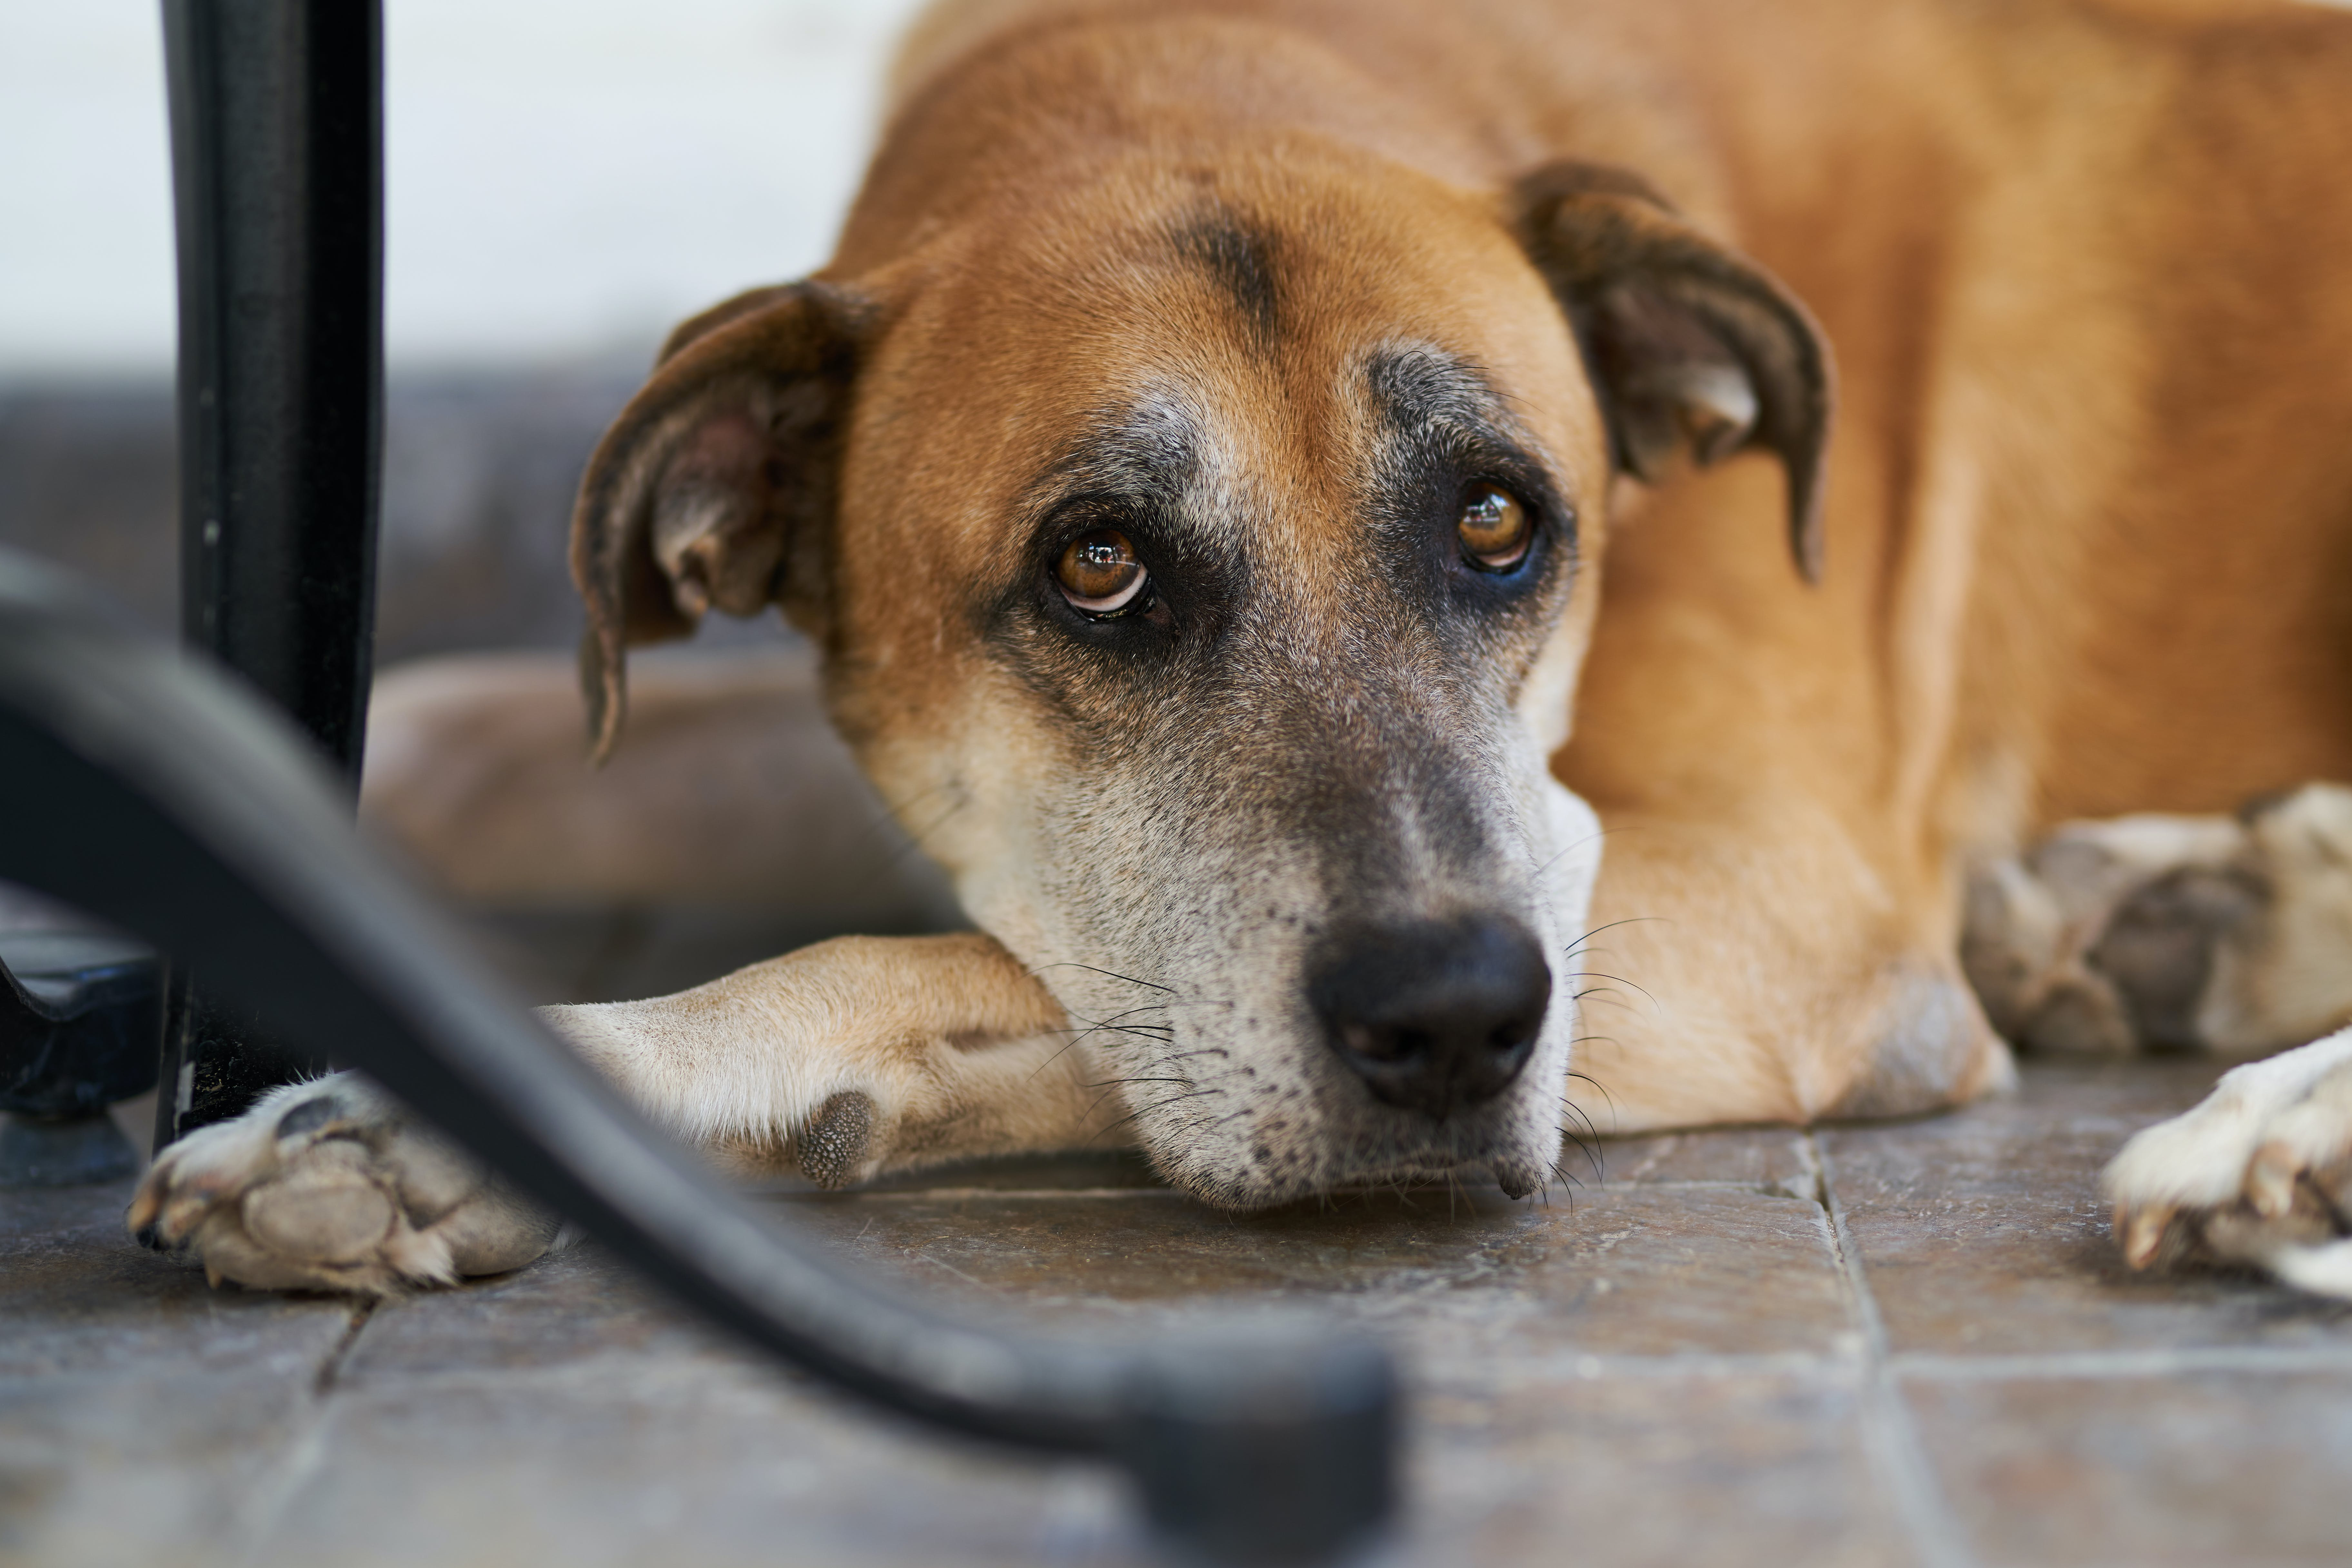 Short-coated Brown and Black Dog Laying on Ground